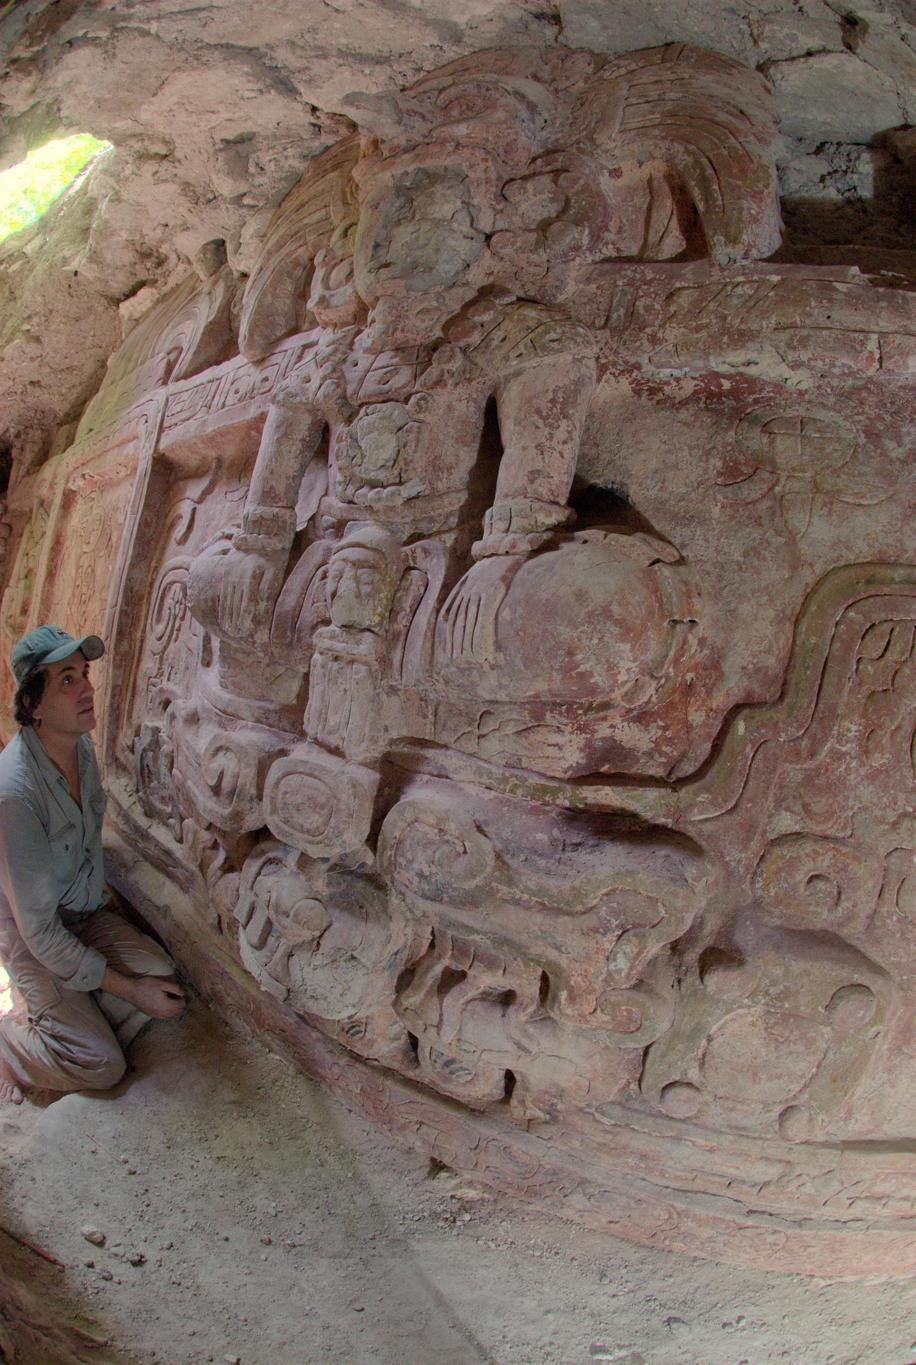 Francisco Estrada-Belli, who found the frieze, looks at it. (Photo: Estrada-Belli/© Holmul Archaeological Project)